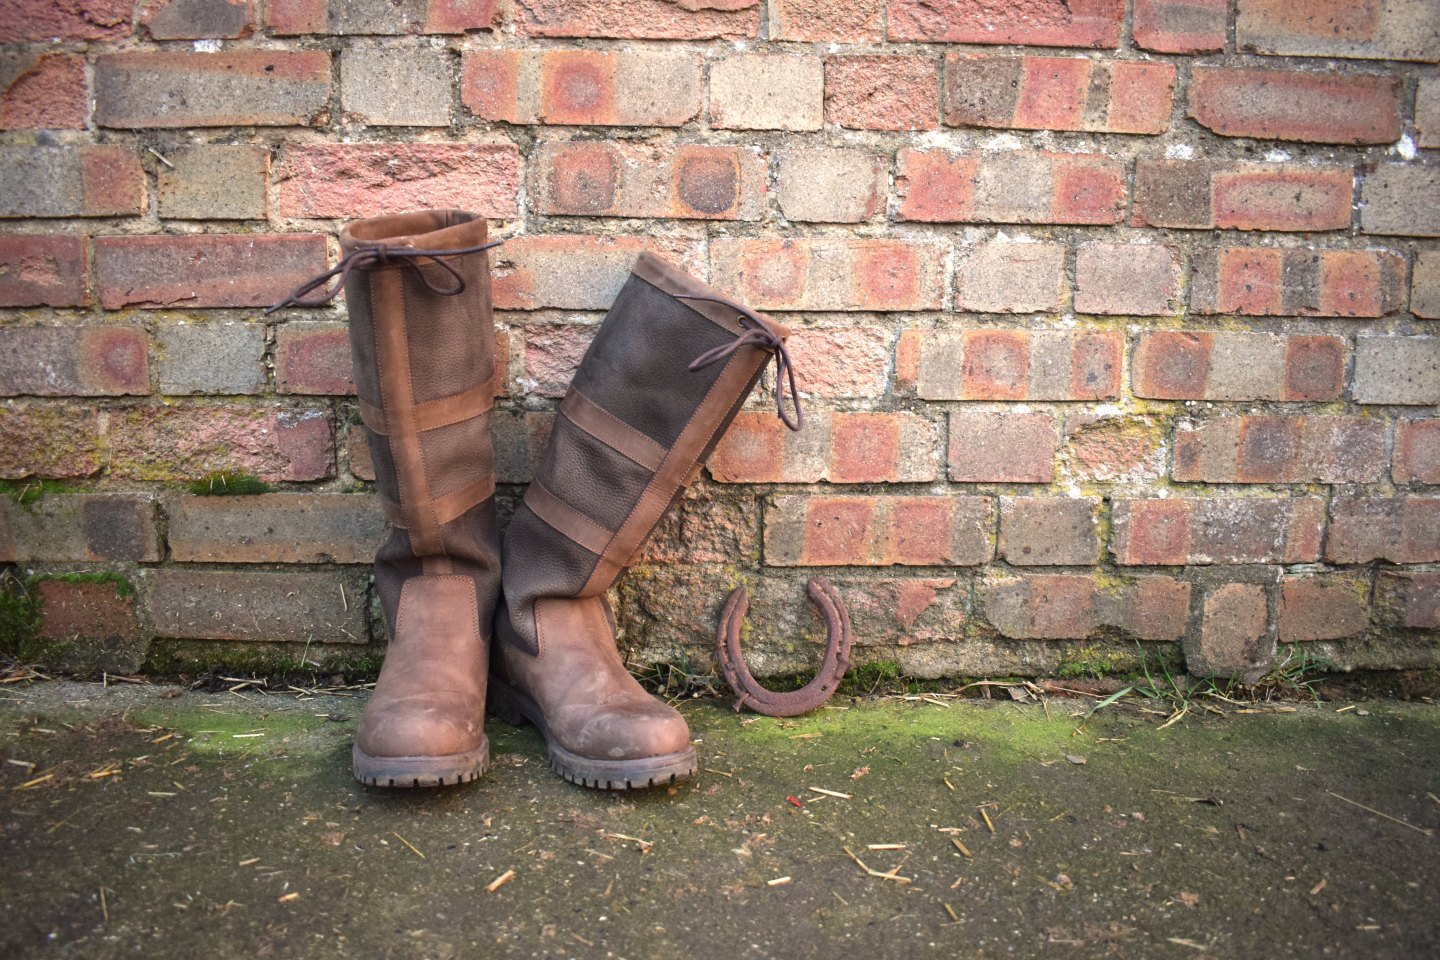 Rydale Tullymore II boots against a brick wall